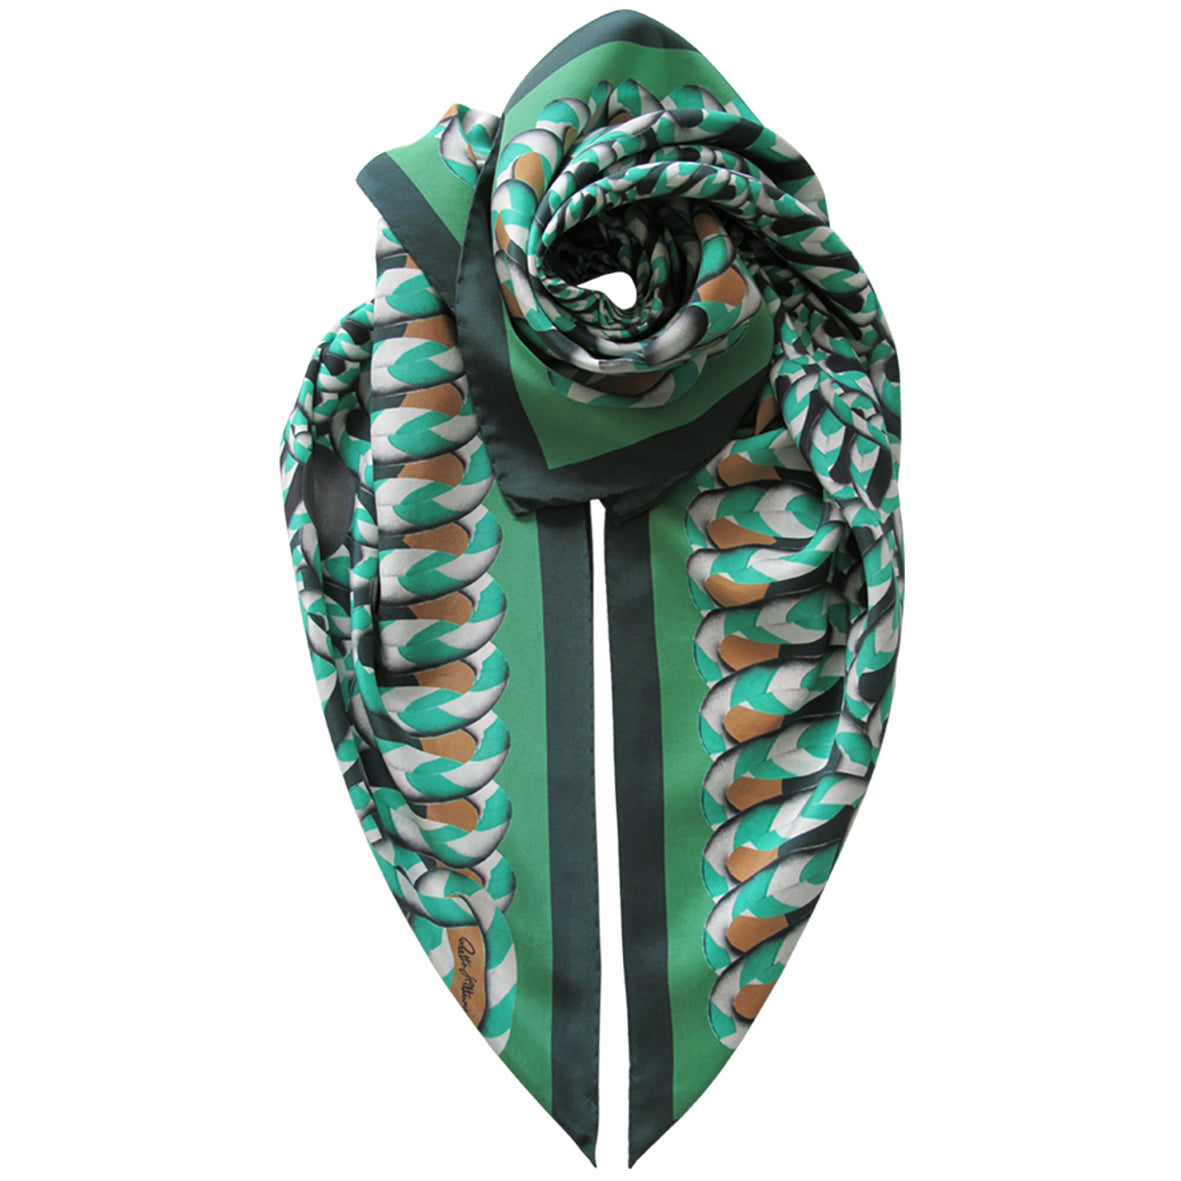 Hoop Hoop Hurray! (green) - Silk Scarf